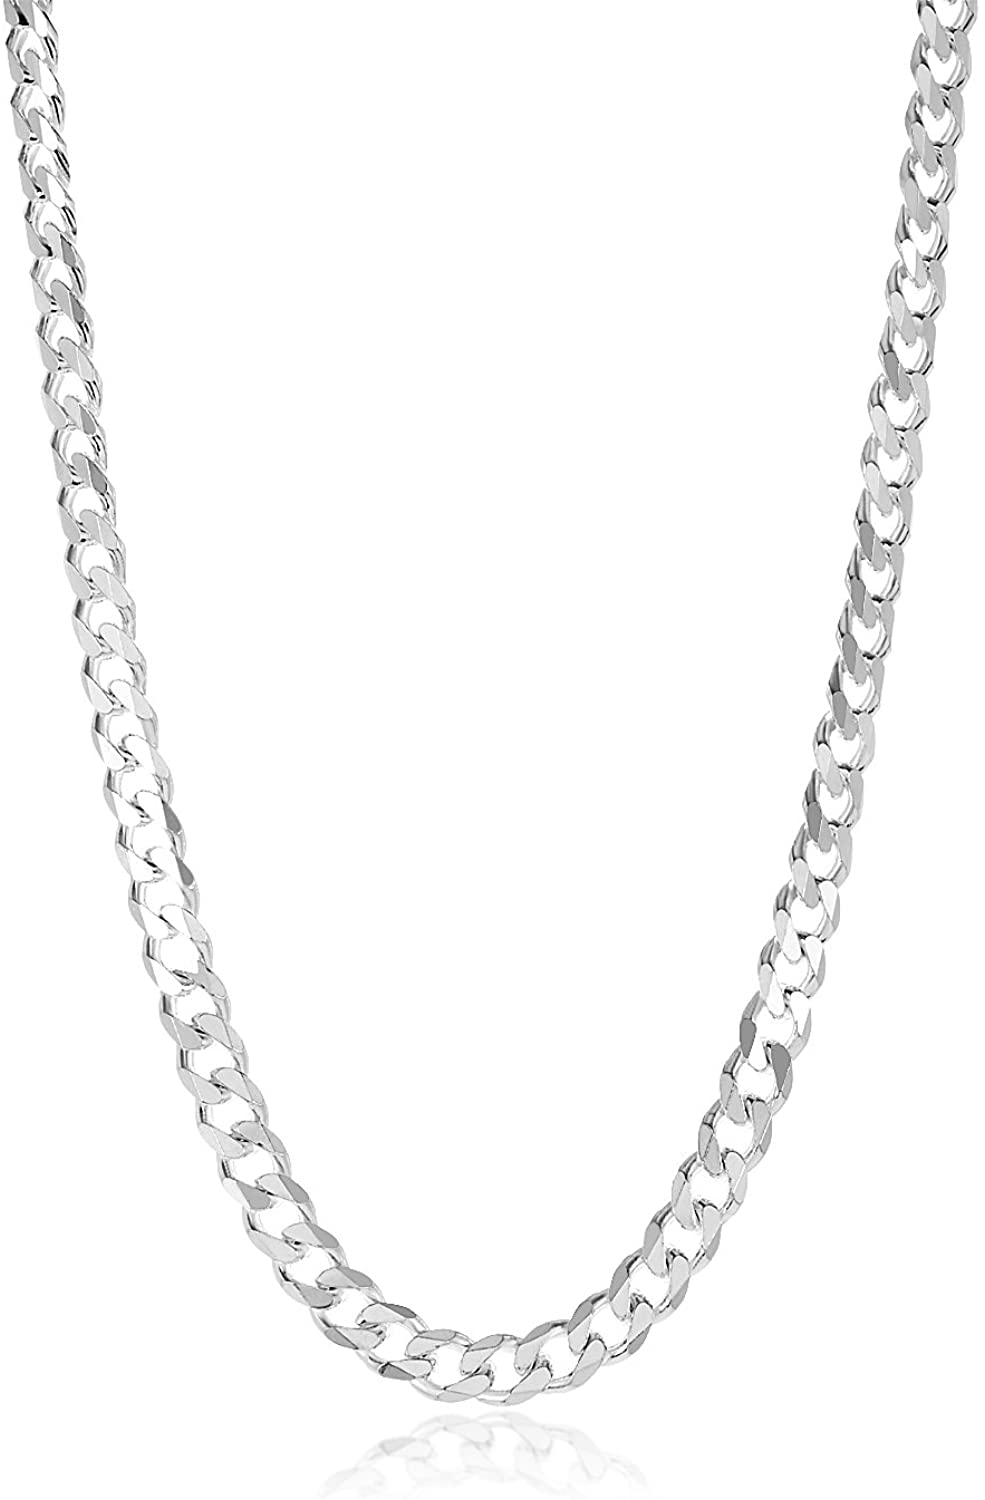 7.5mm High-Polished .925 Sterling Silver Flat Cuban Link Curb Chain Necklace, 28 inches + Jewelry Cloth & Pouch